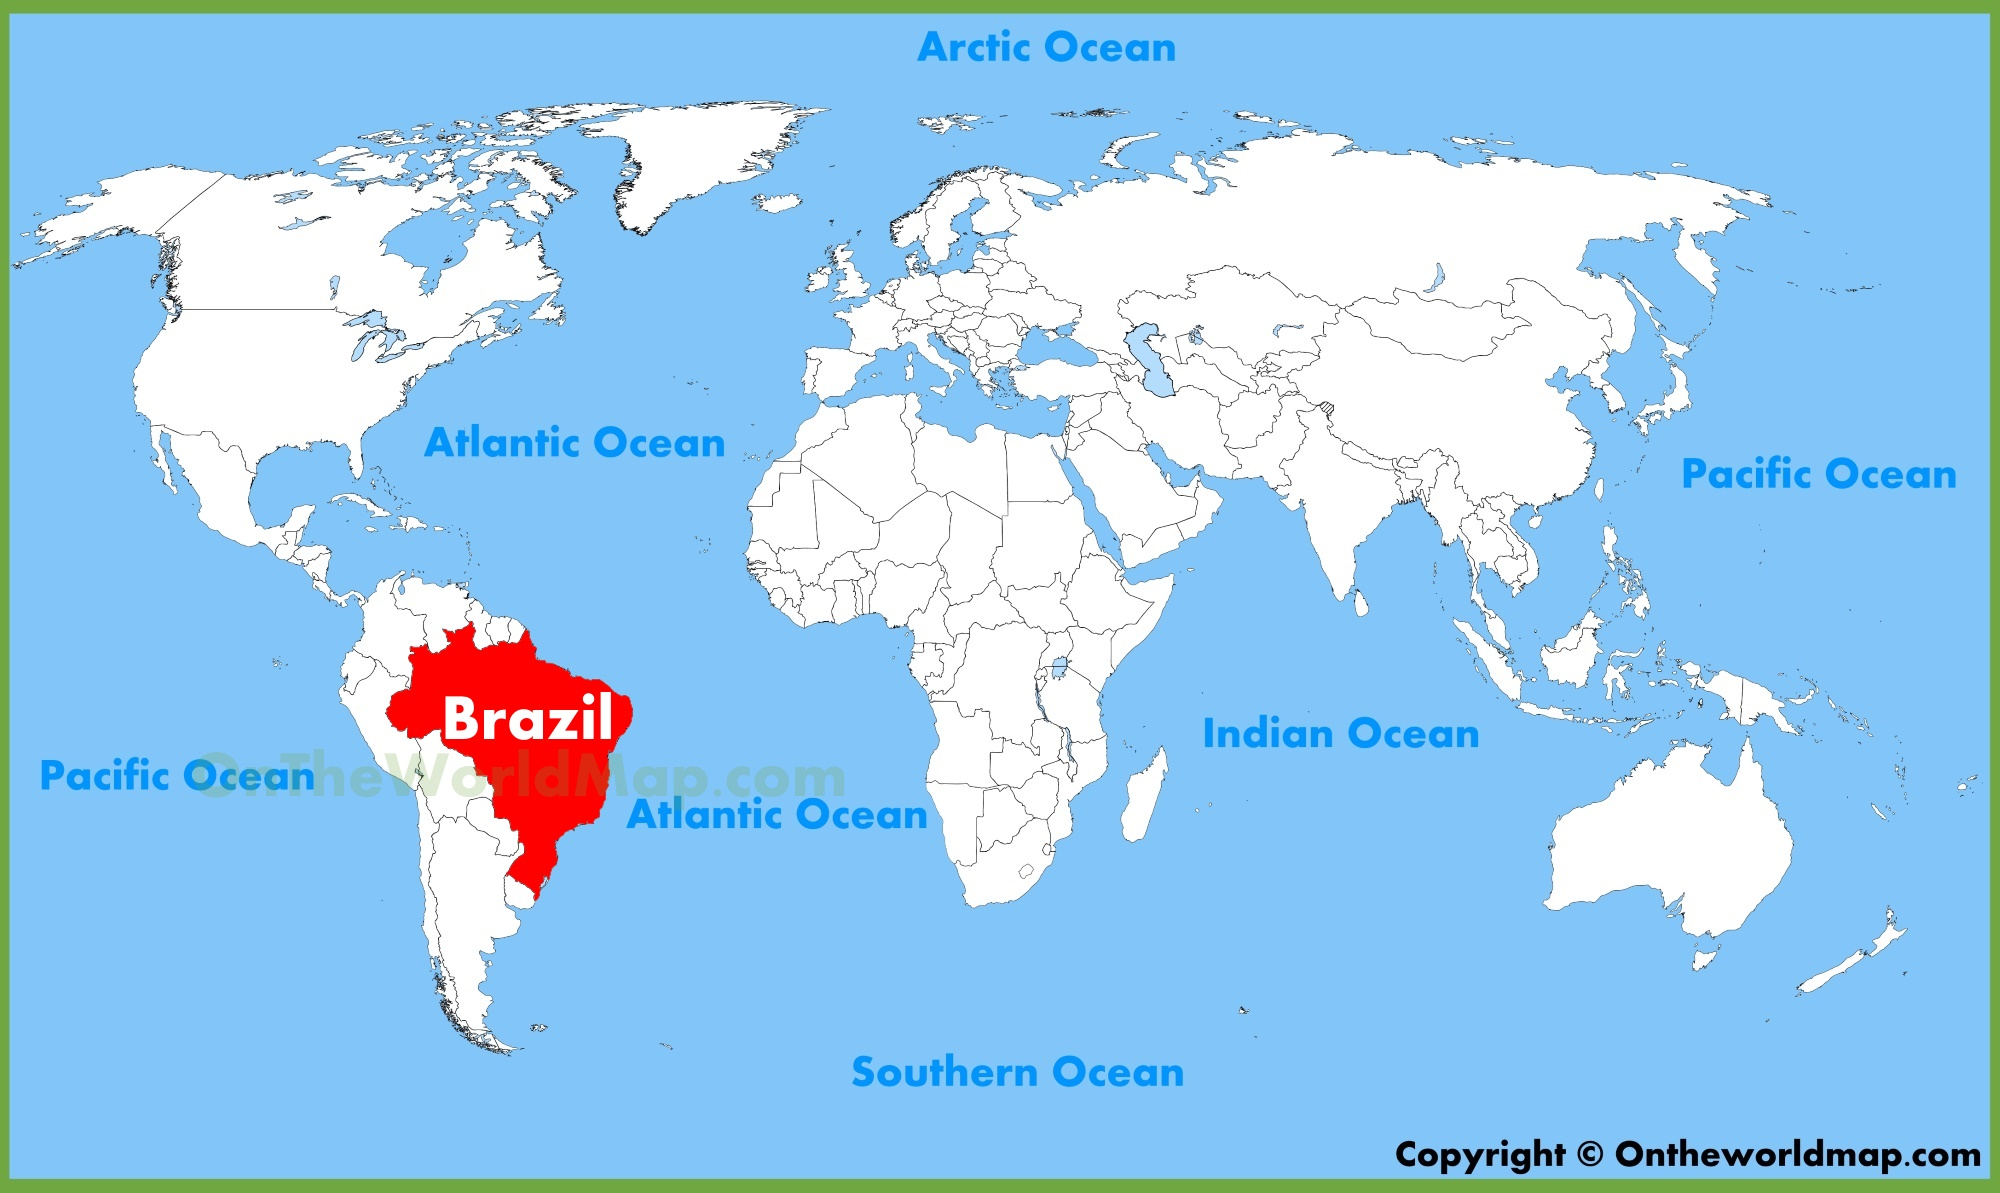 Brazil location on the World Map